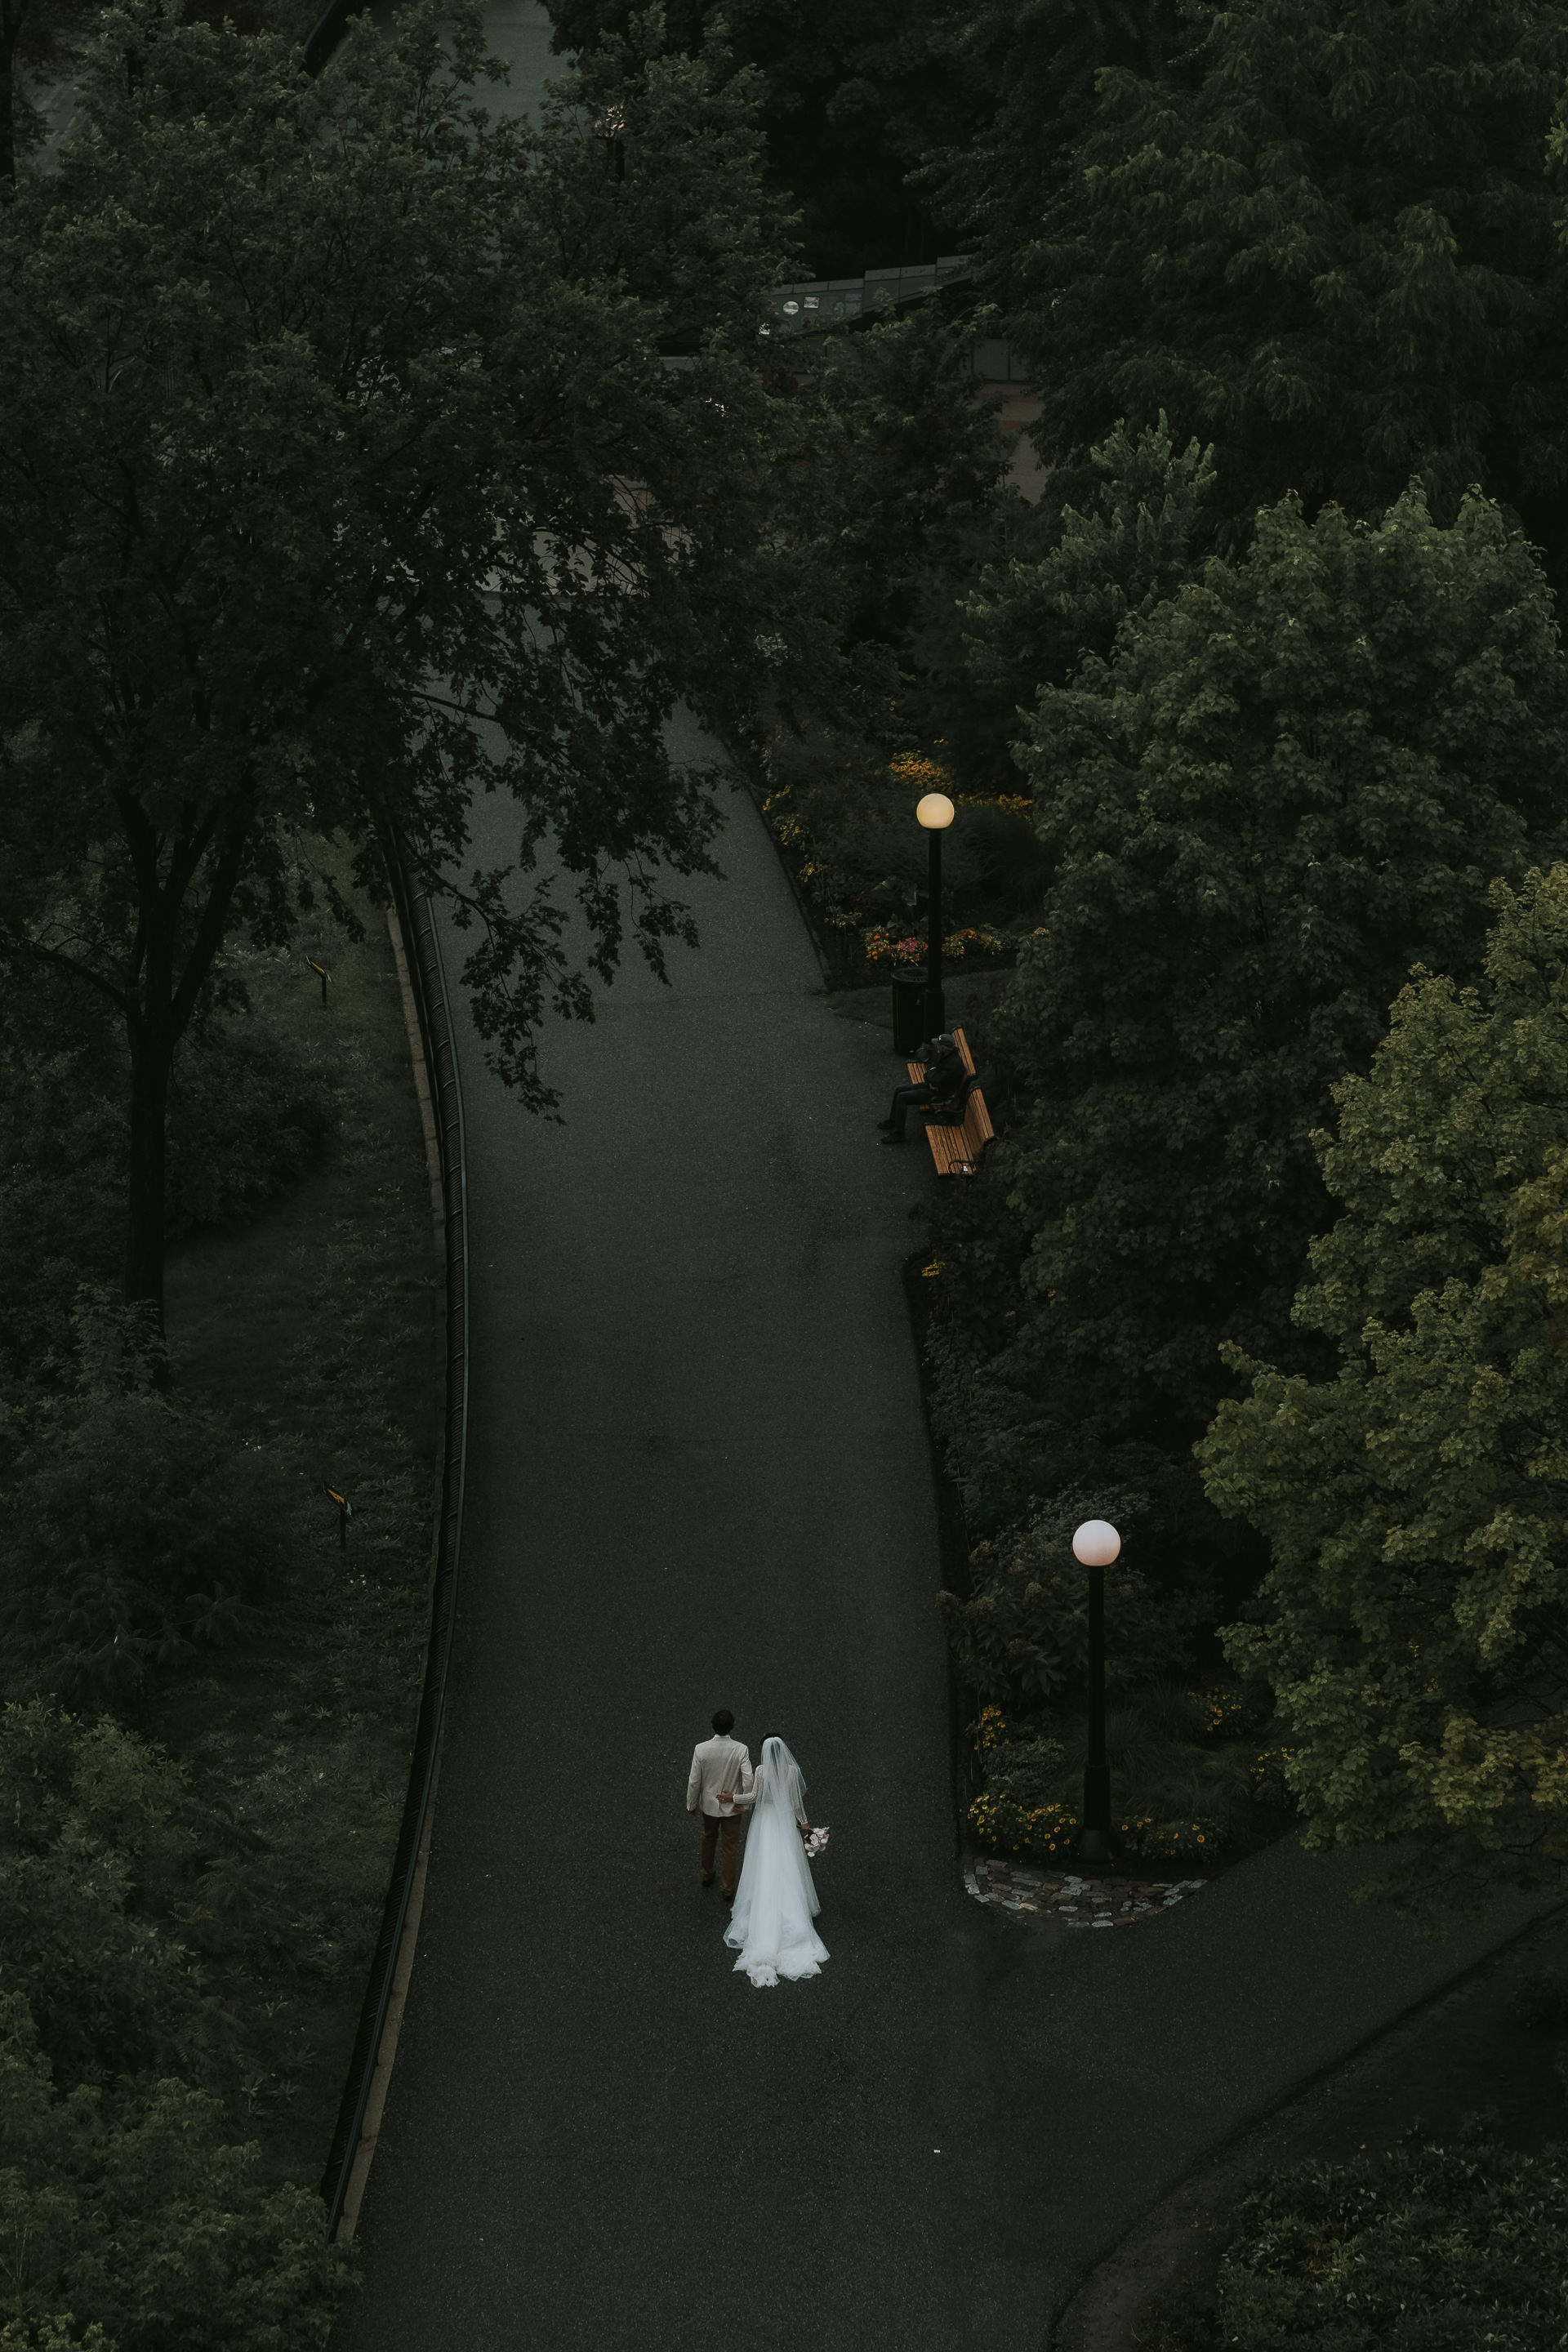 Aerial view of couple on evening walk - photo by Joel and Justyna